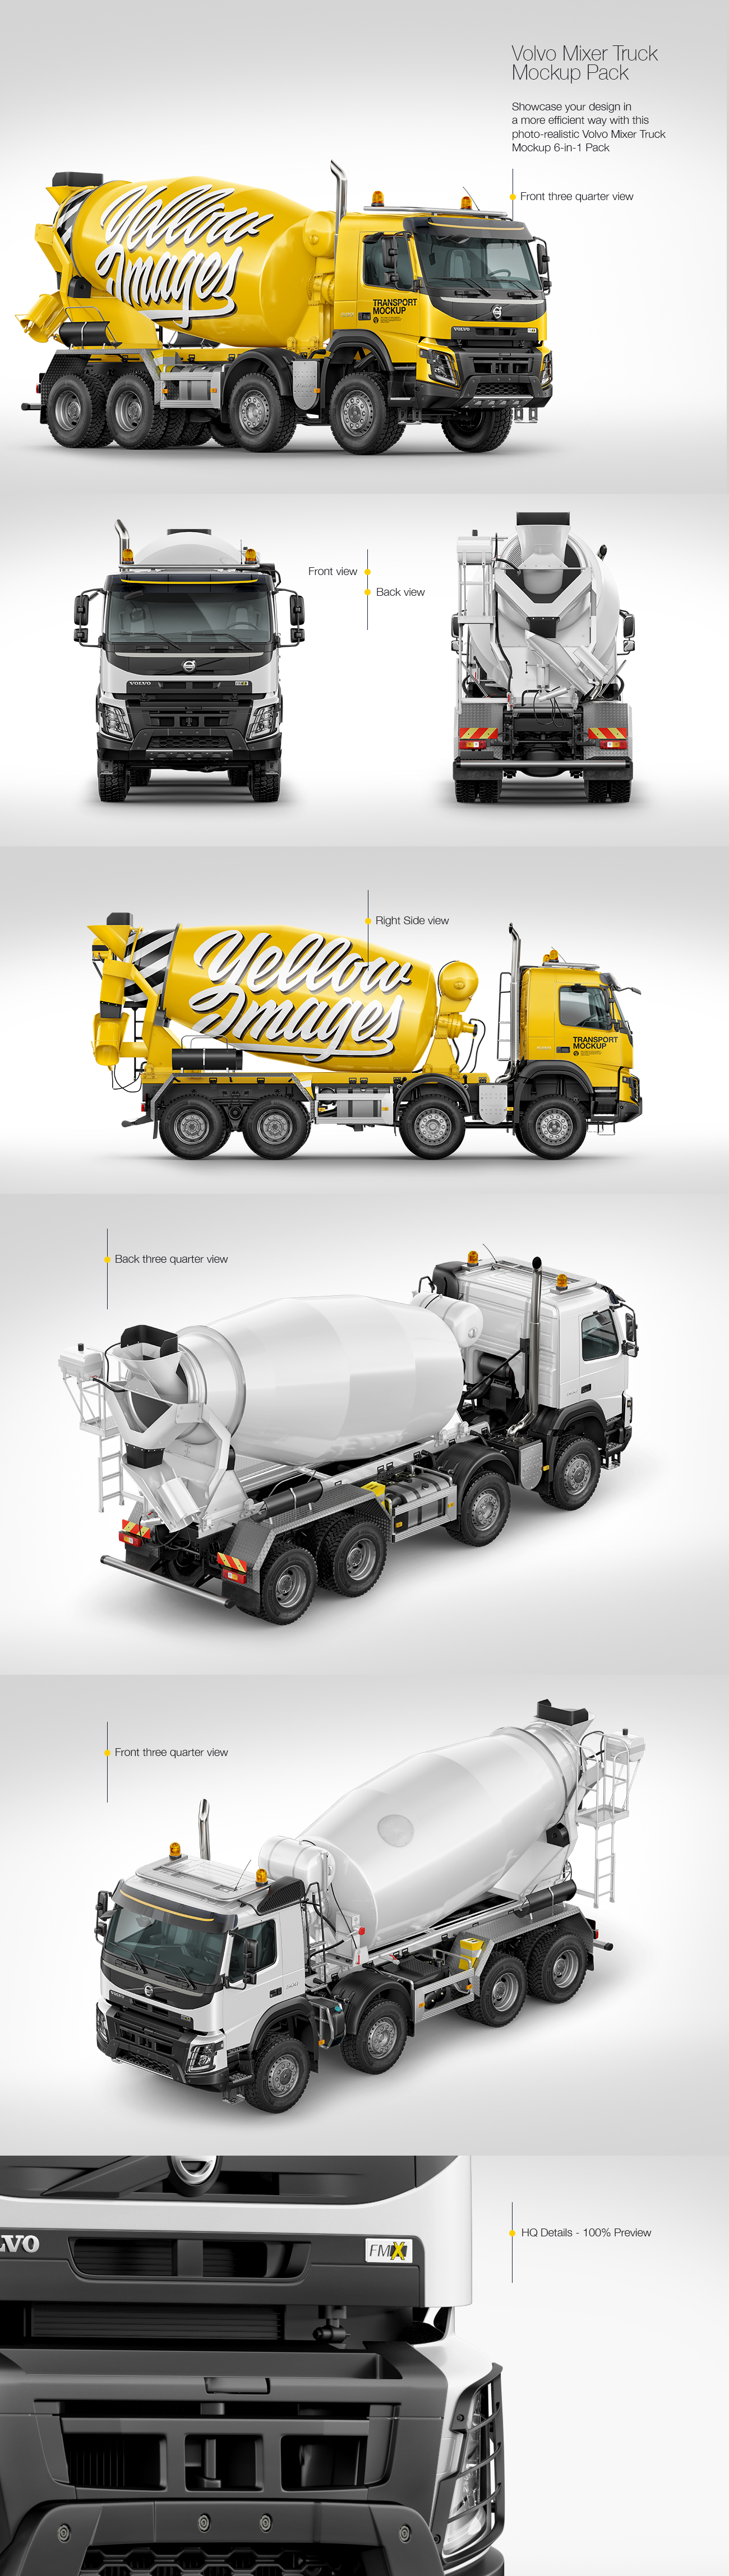 Cement Mixer Truck Mockup Pack